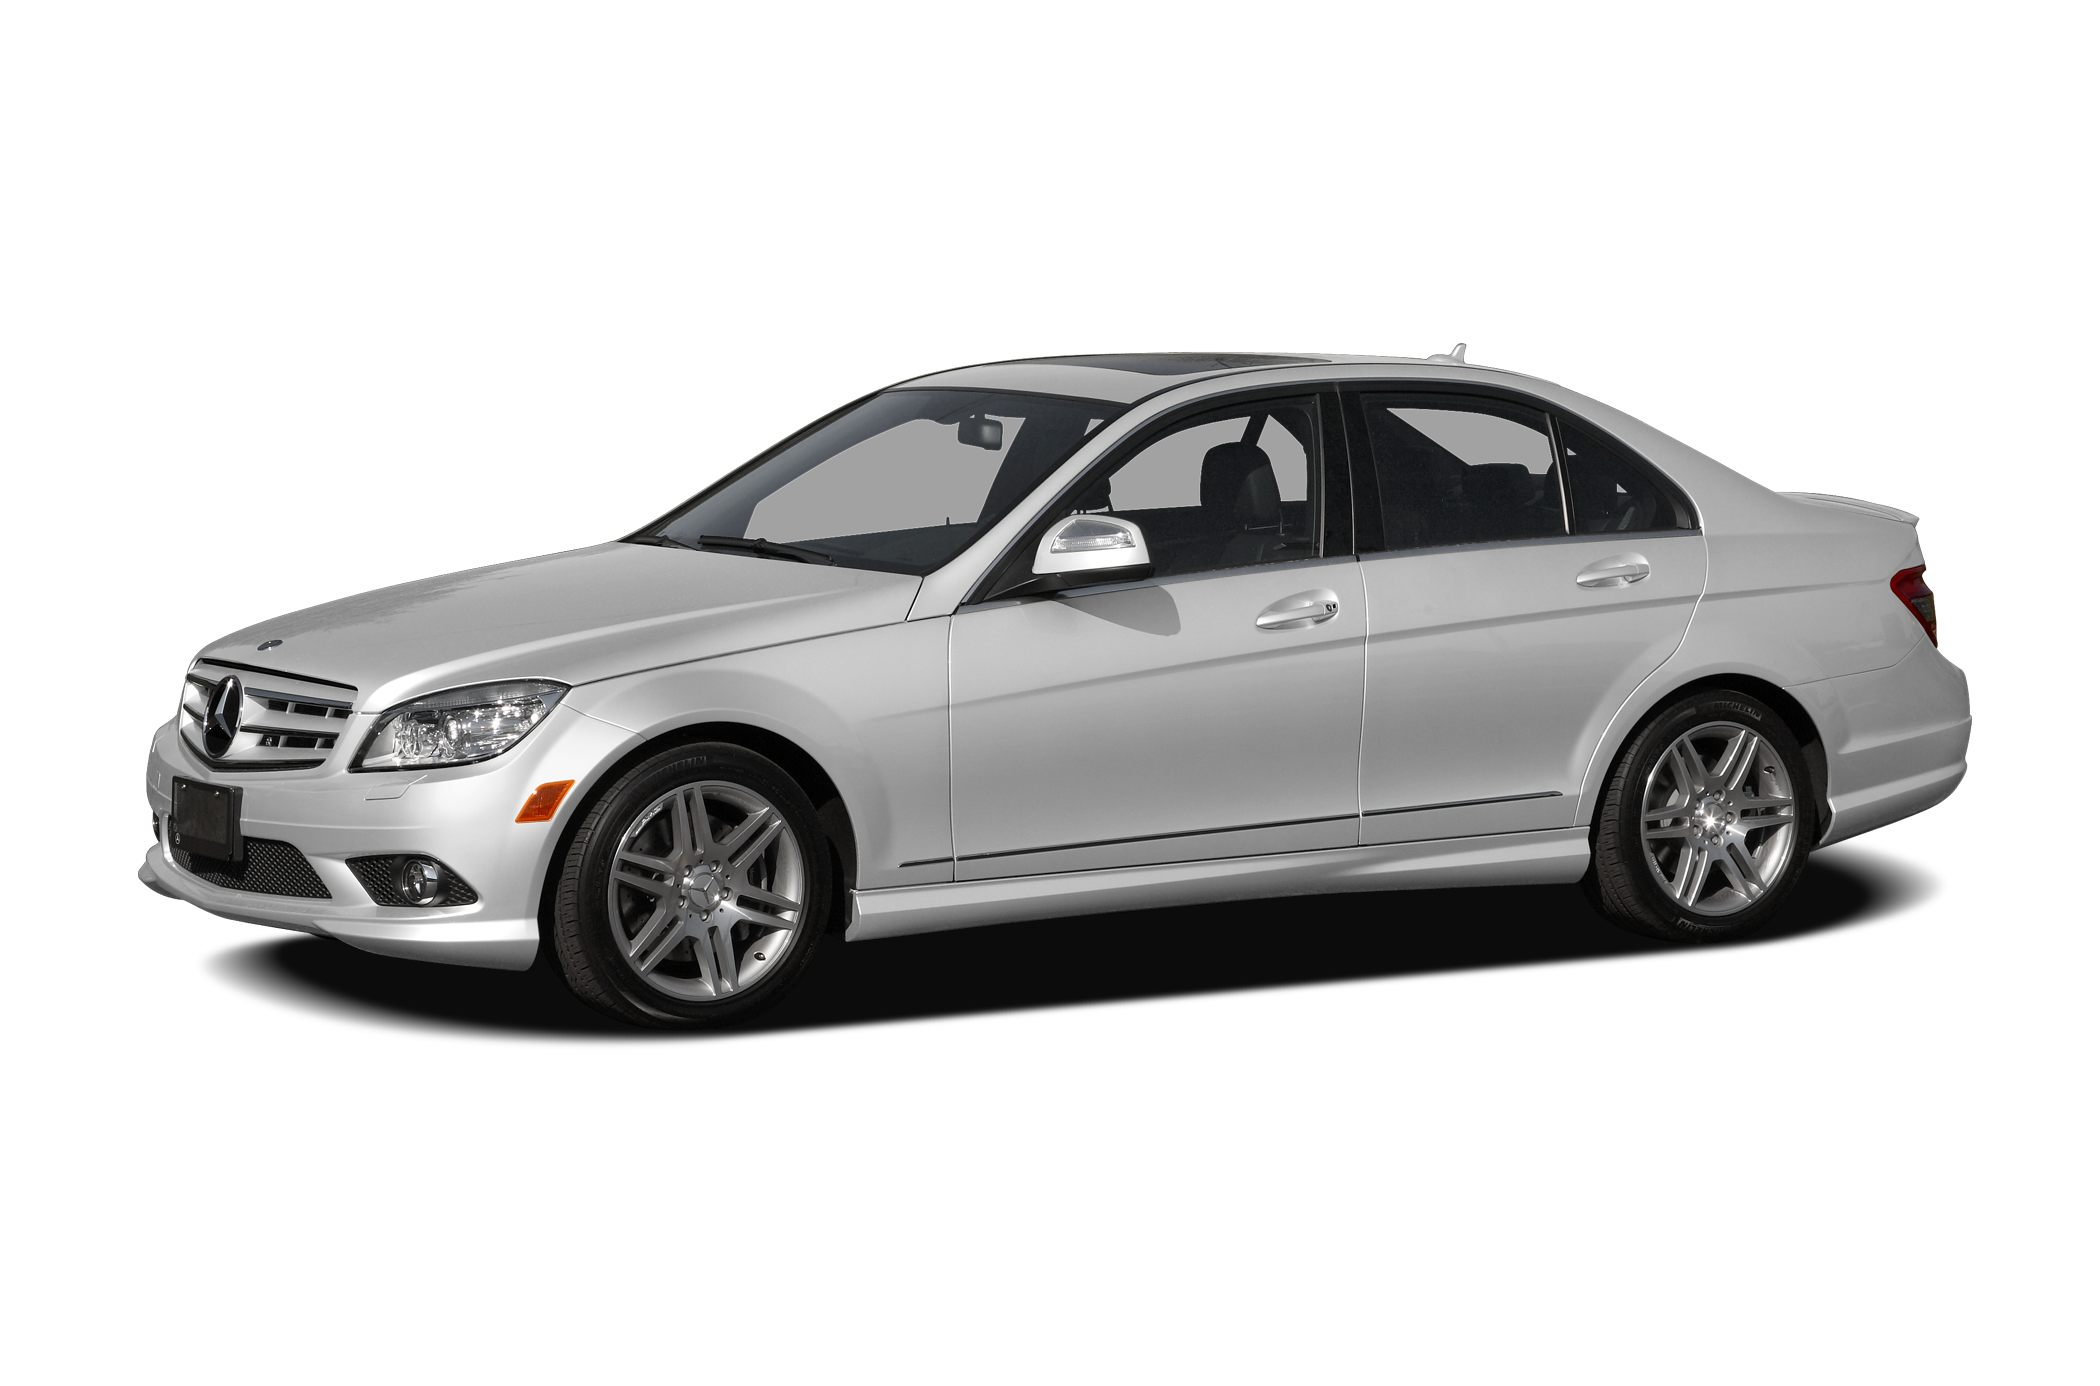 2009 Mercedes-Benz C-Class C350 Sport Sedan for sale in Smyrna for $23,900 with 49,488 miles